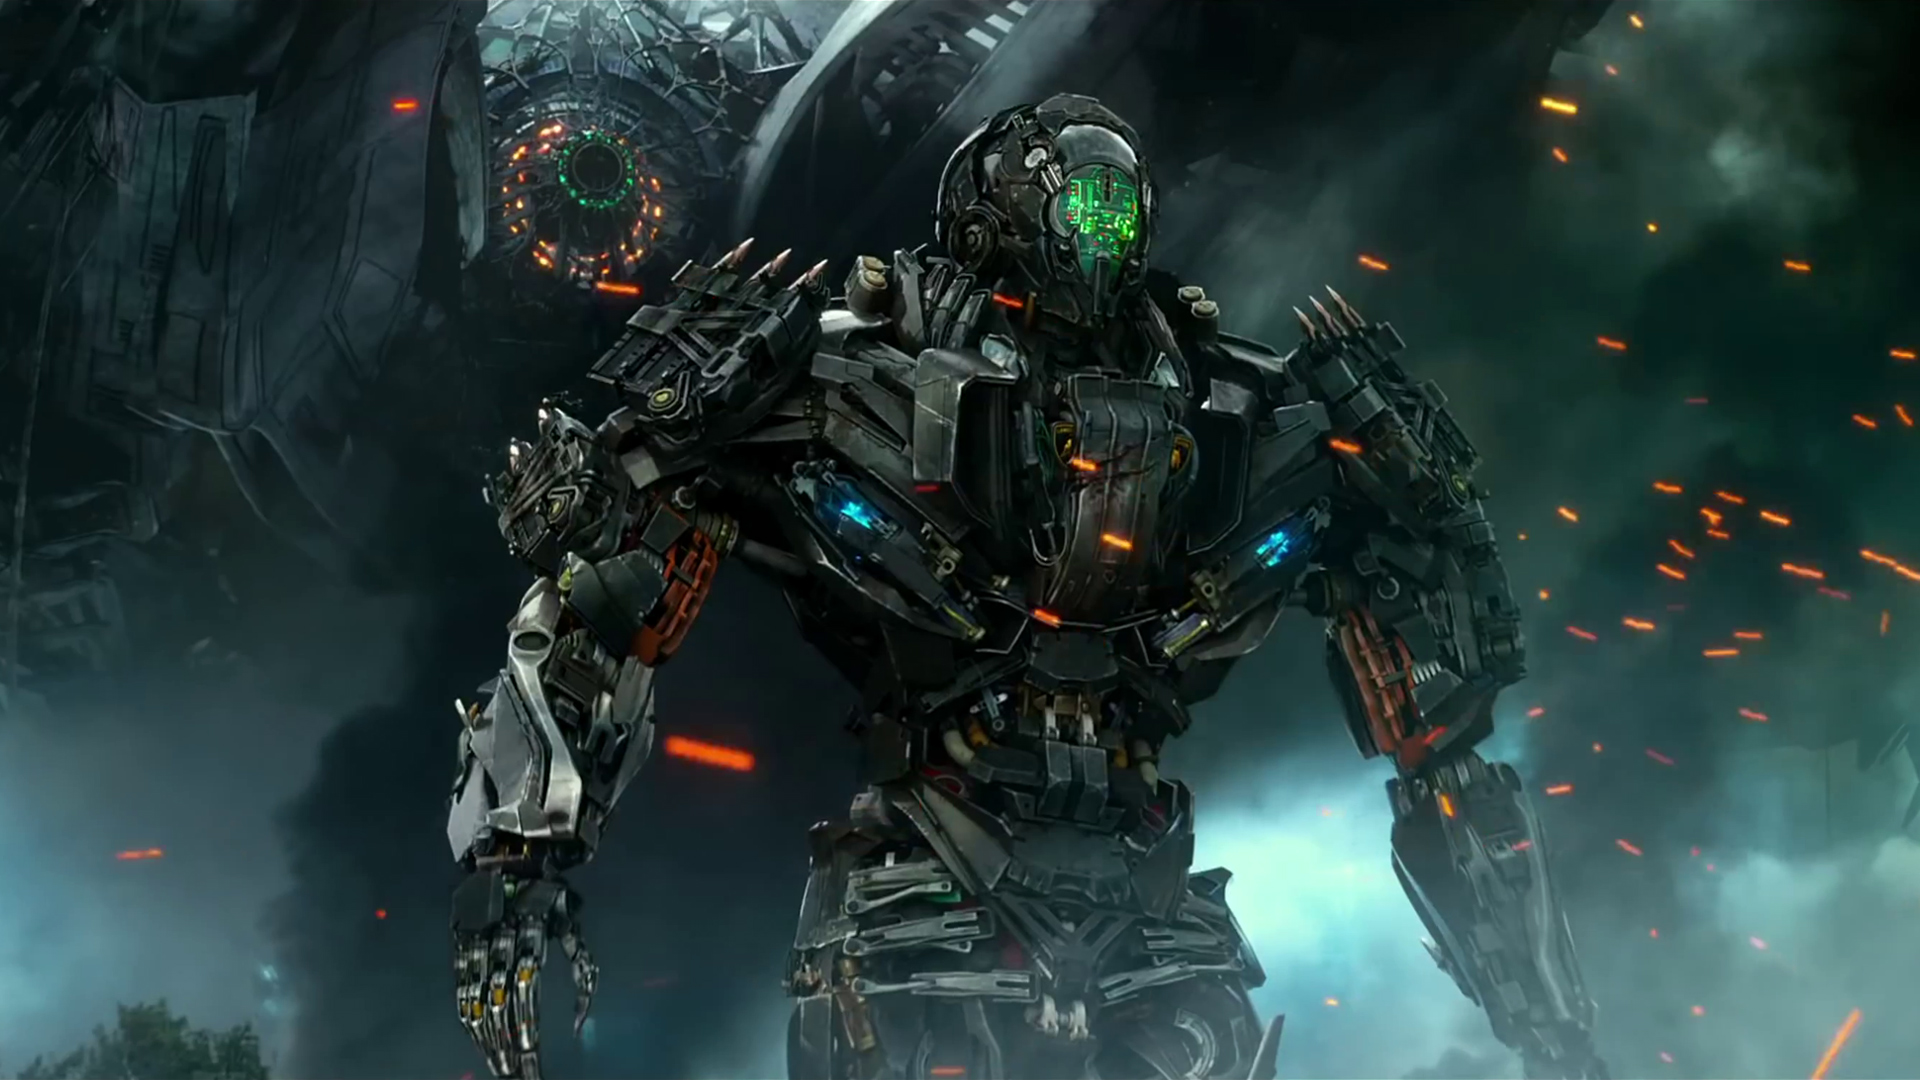 image - transformers-age-of-extinction-4 | villains wiki